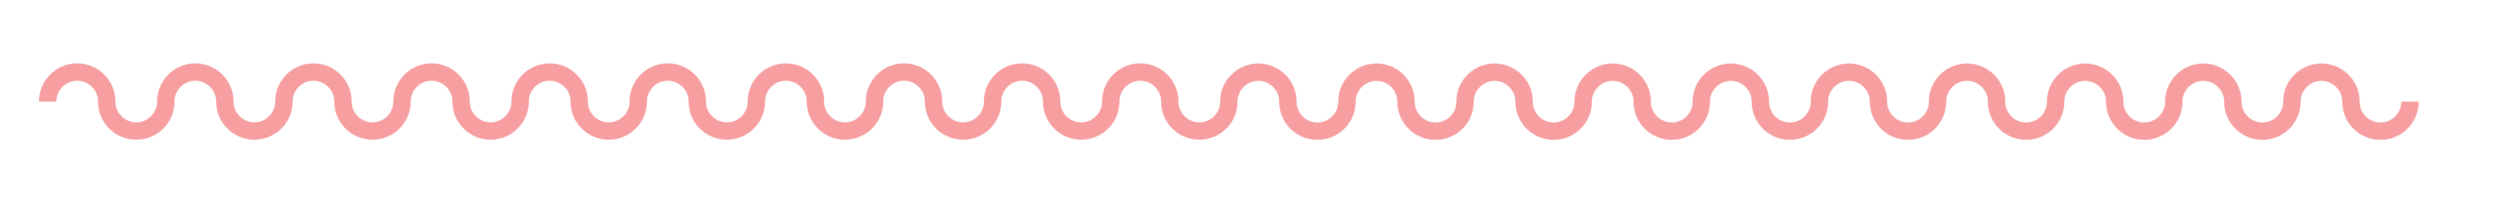 pink_squiggle-01.png